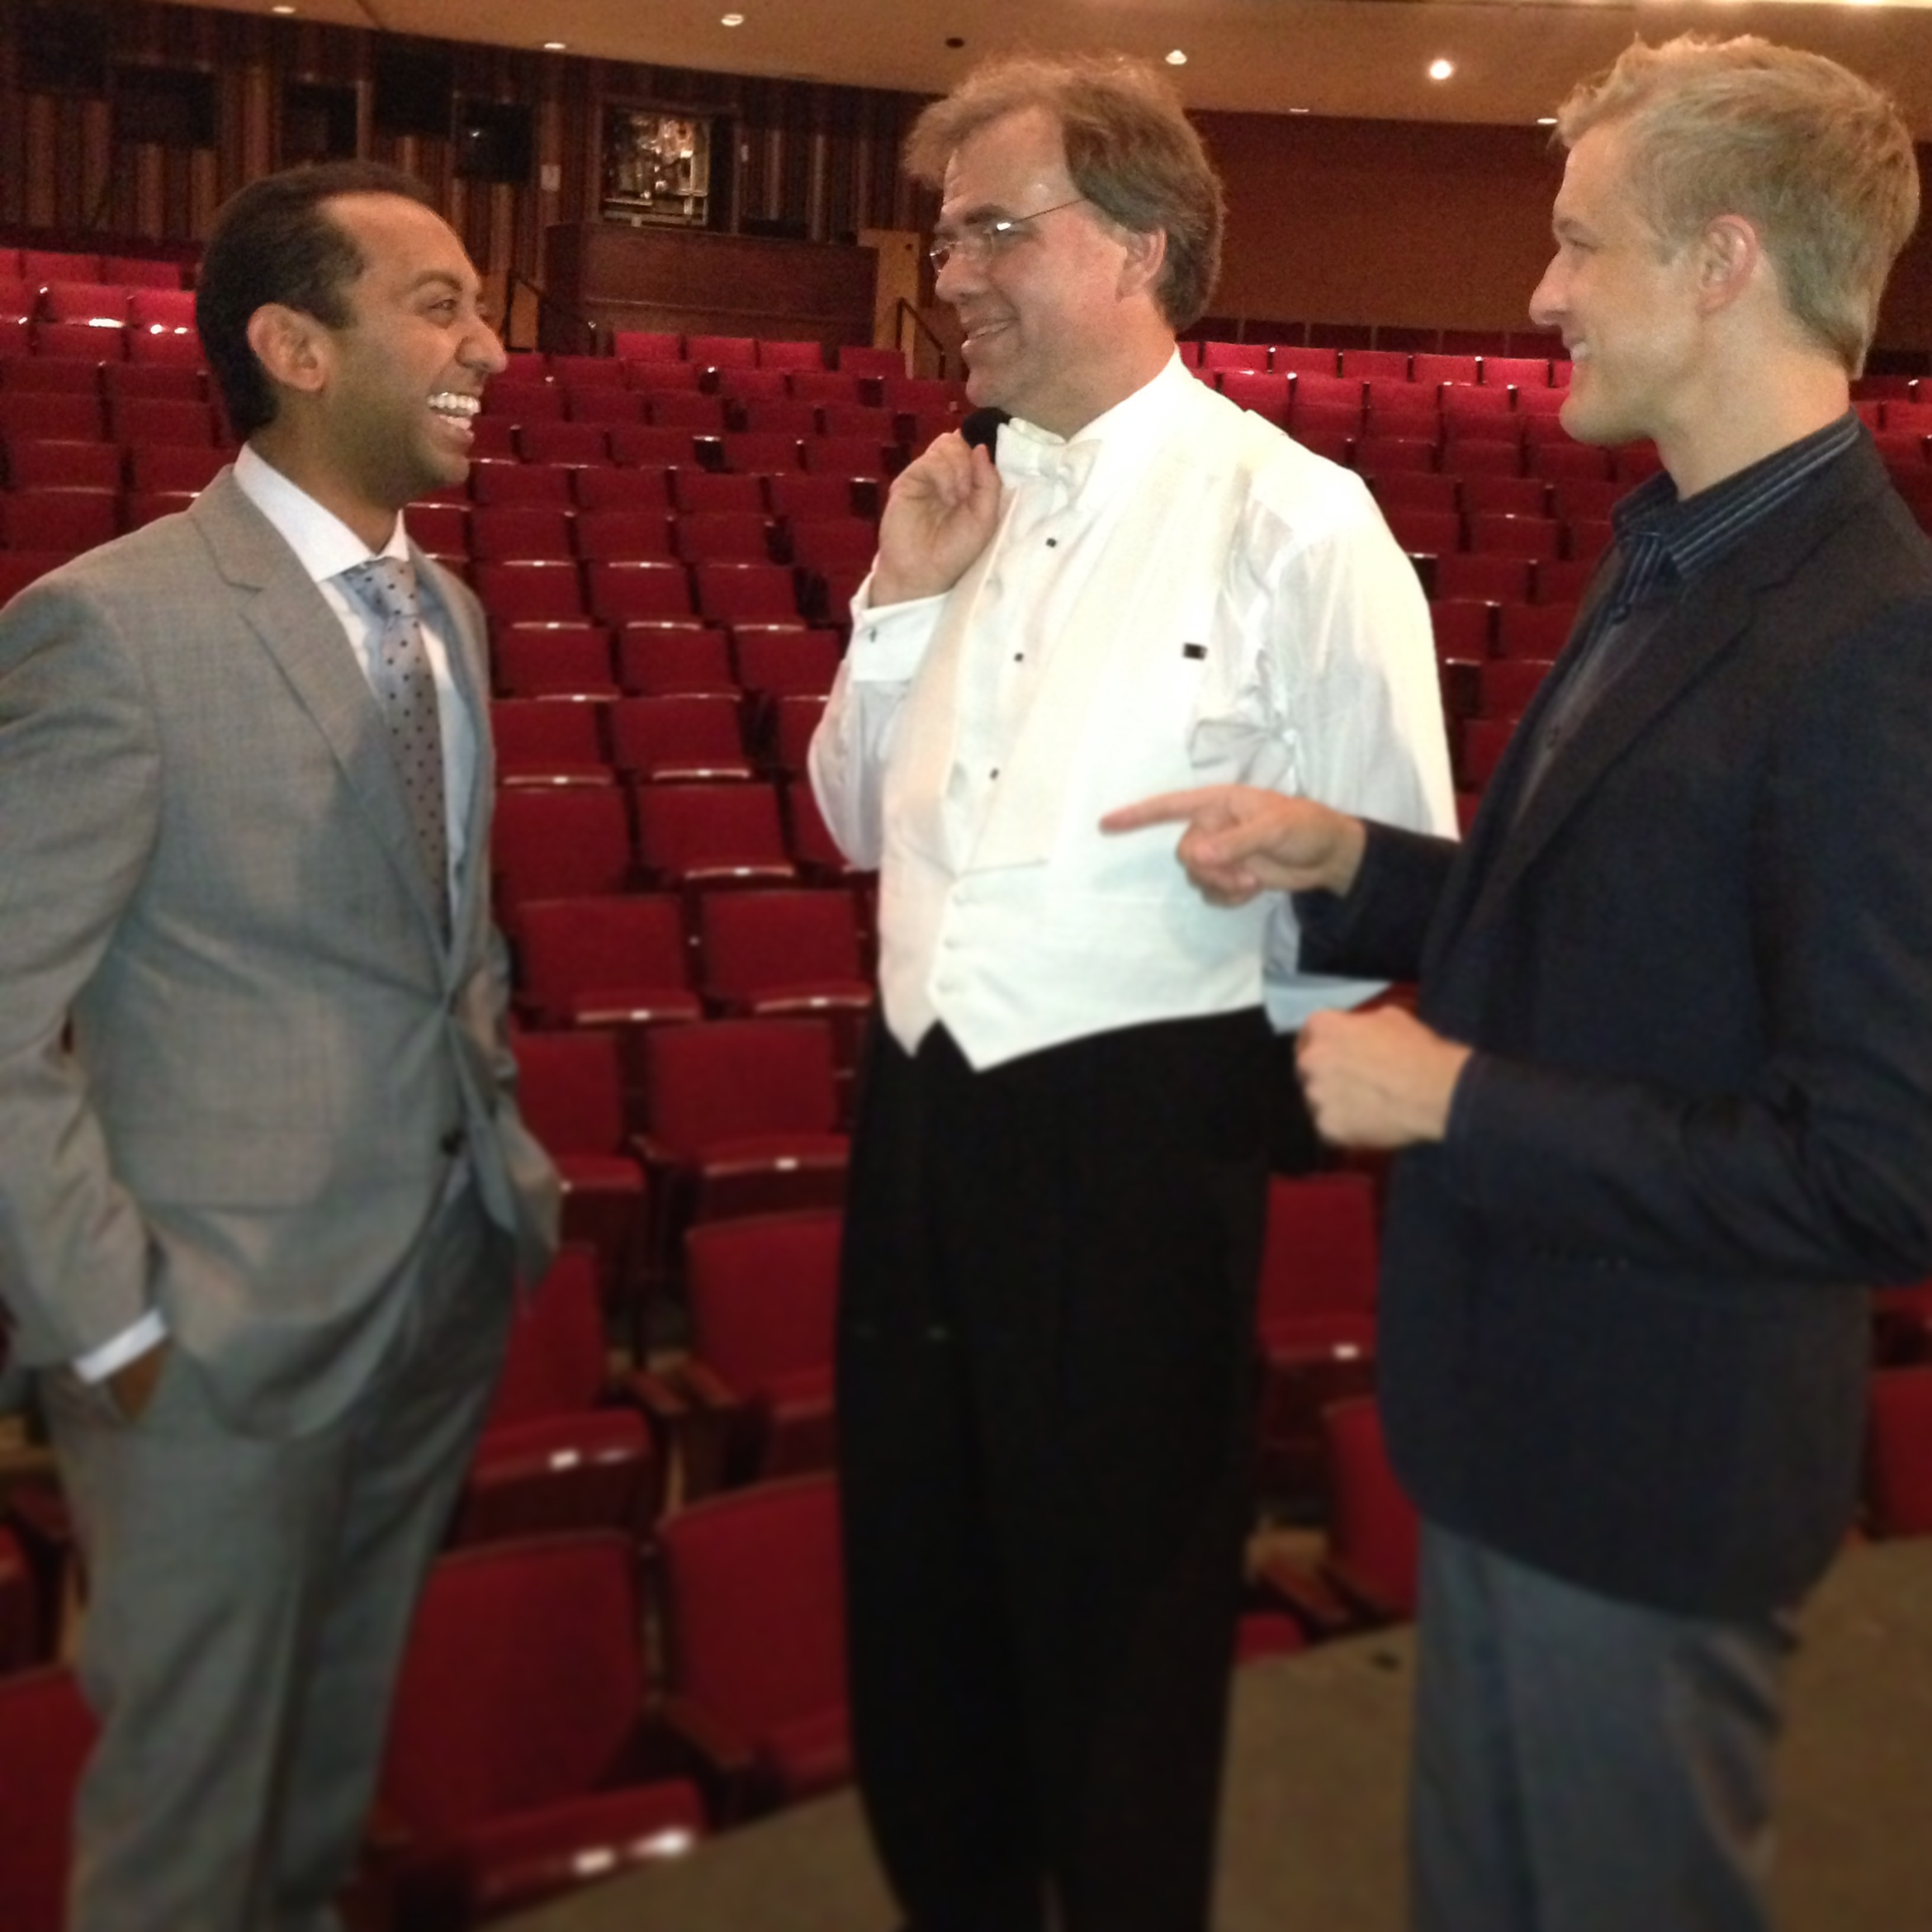 With colleagues Sameer Patel and Christopher Wilkins after playing a Mozart Piano Concerto with Maestro Wilkins and the Akron Symphony.